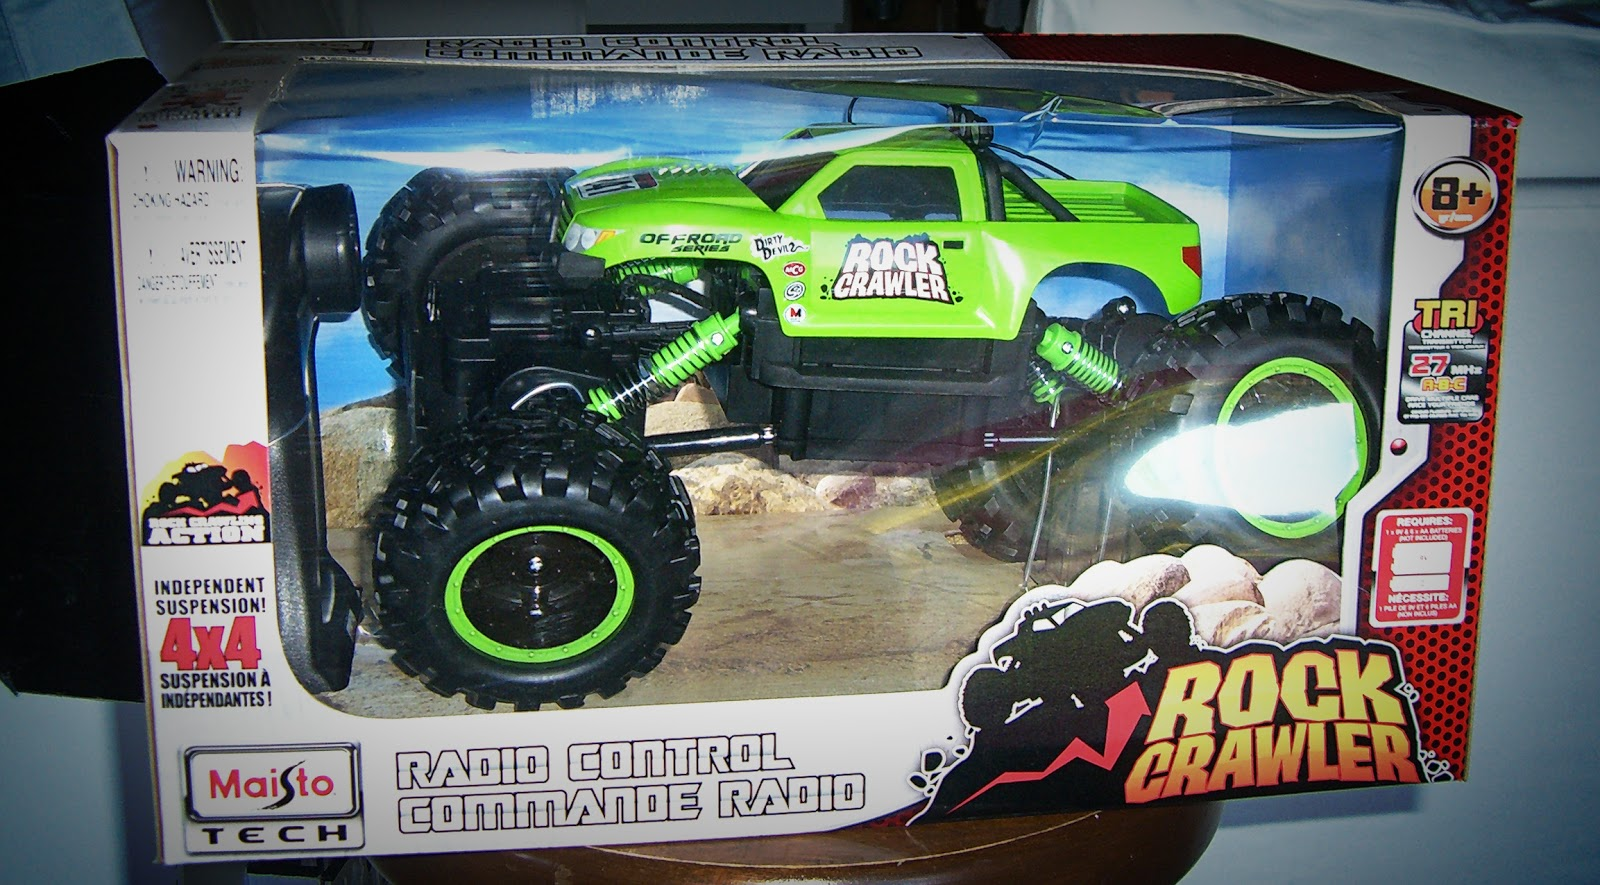 Home  Kids  Life : Scooter & Chewy Review - Maisto R/C Rock Crawler